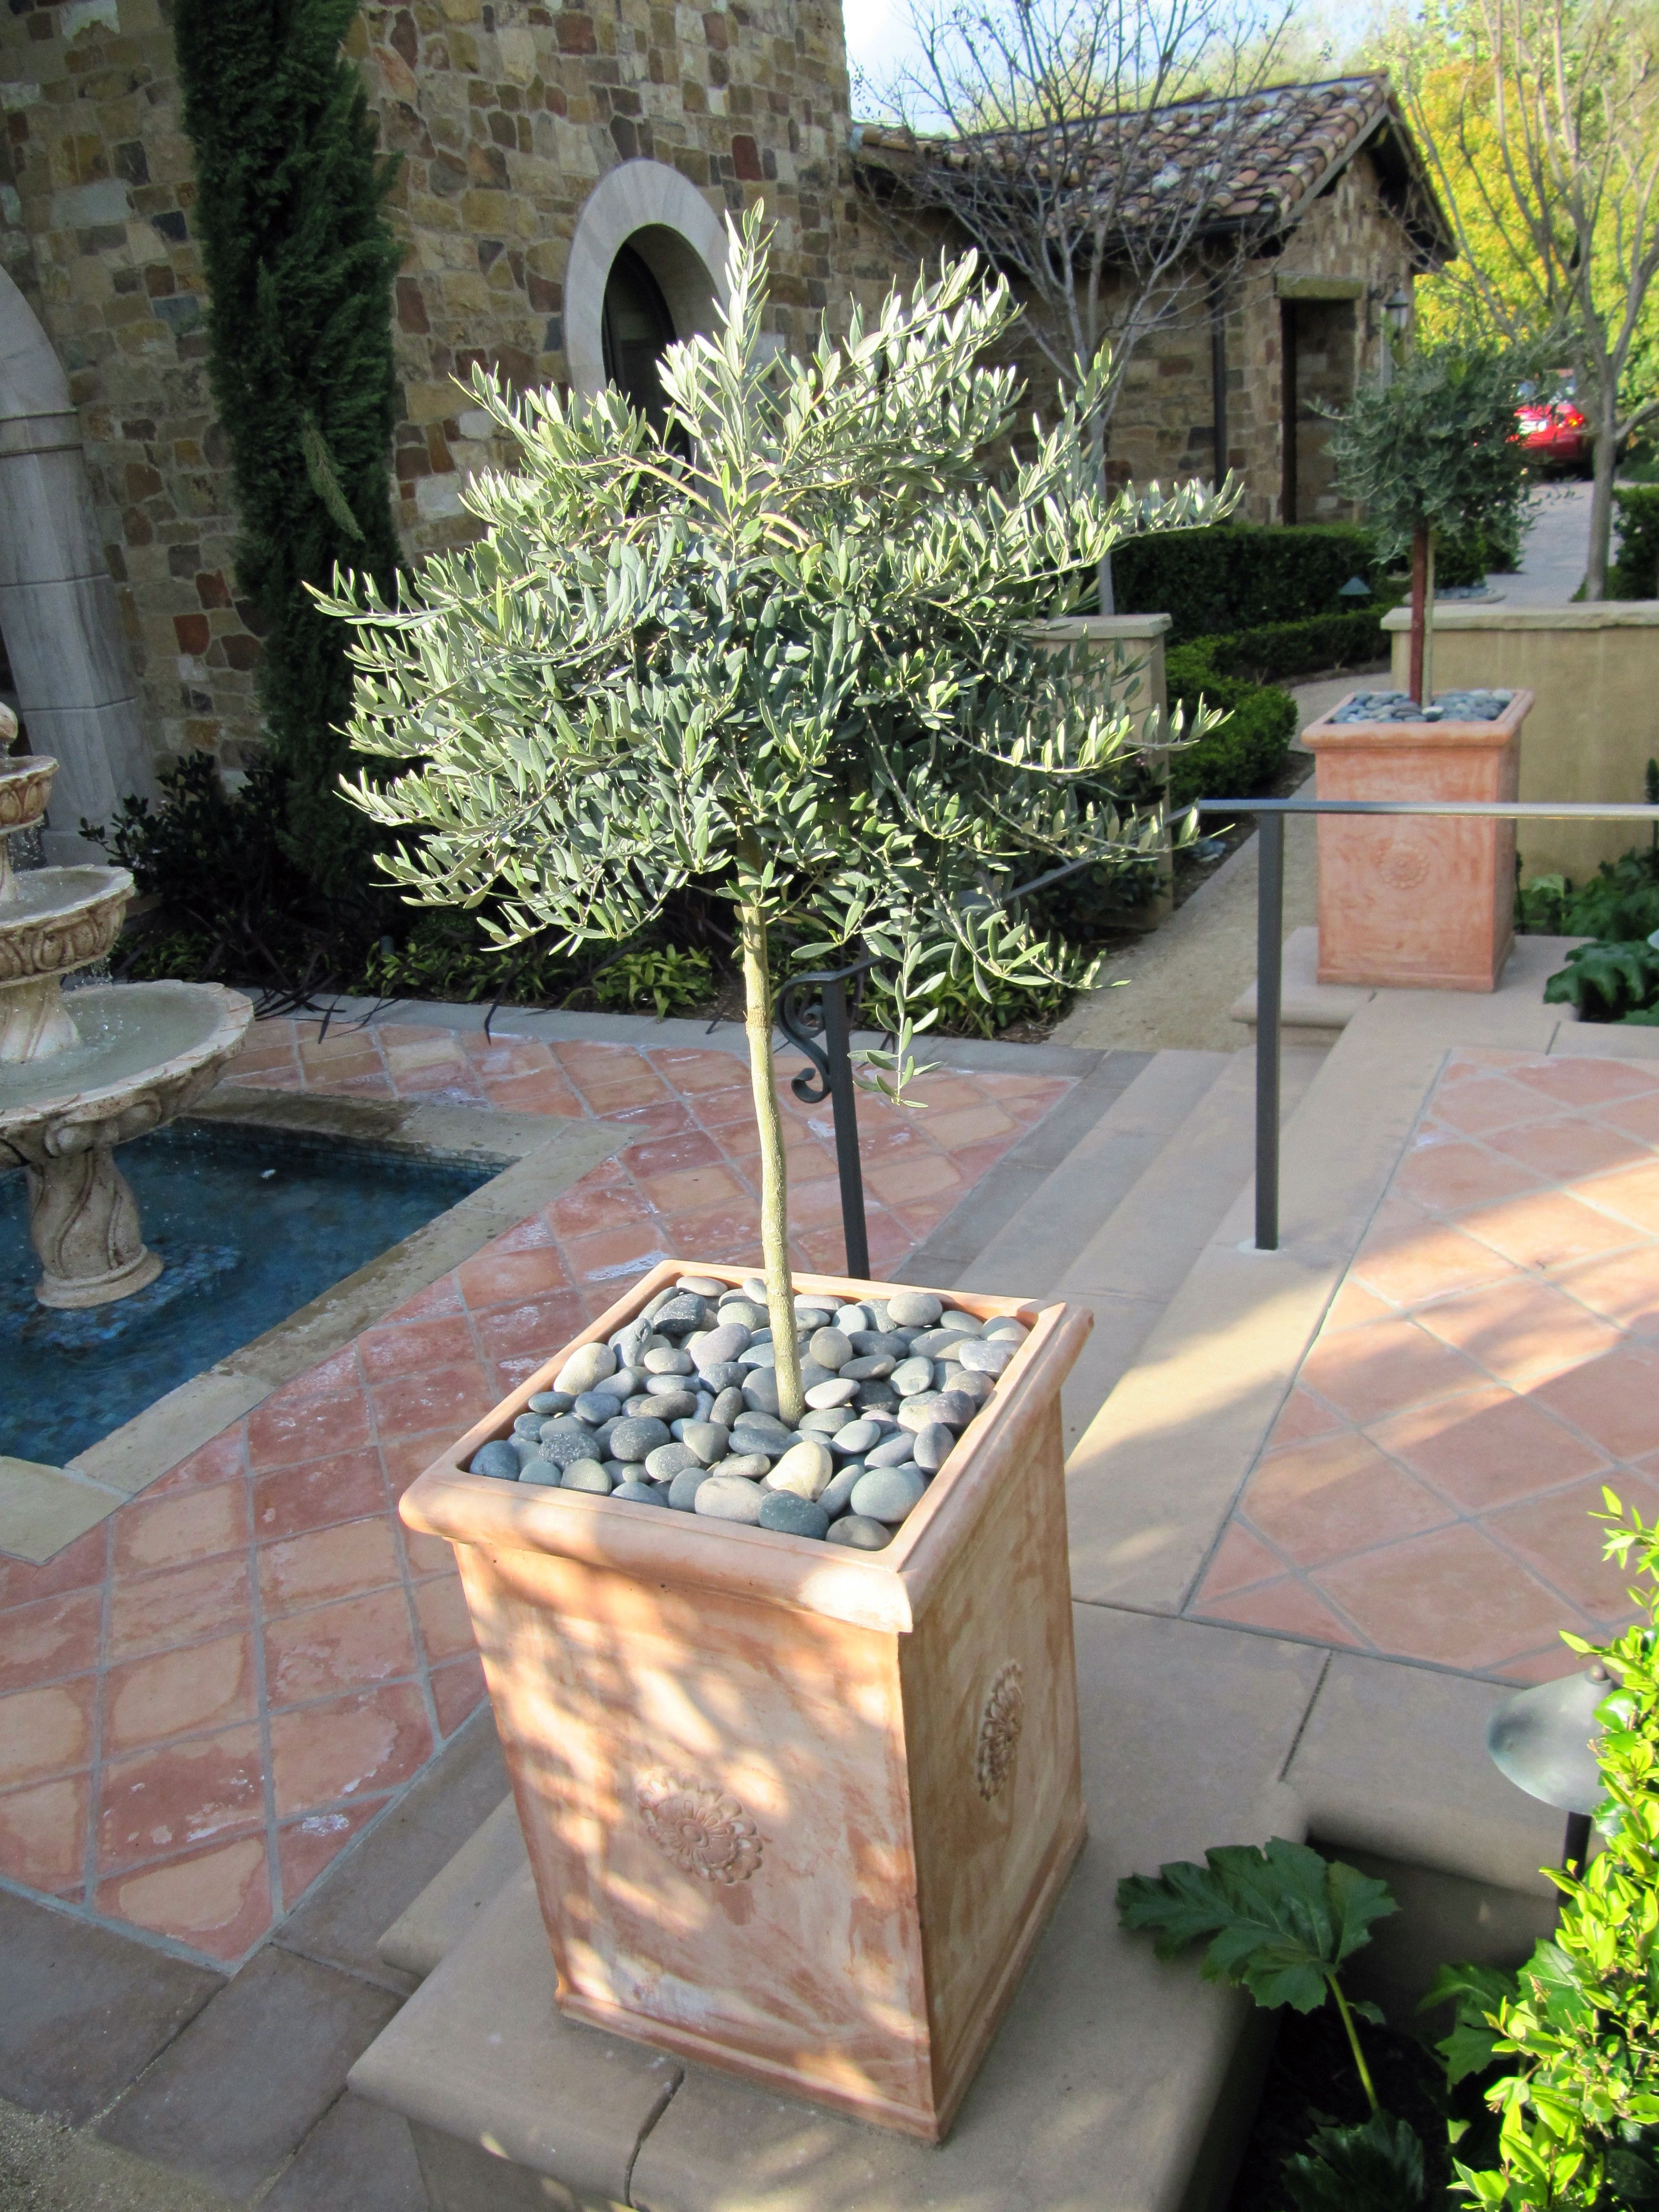 Pin By Jeanne Eige On Mcbain Landscape Potted Trees Potted Olive Tree Garden Pots